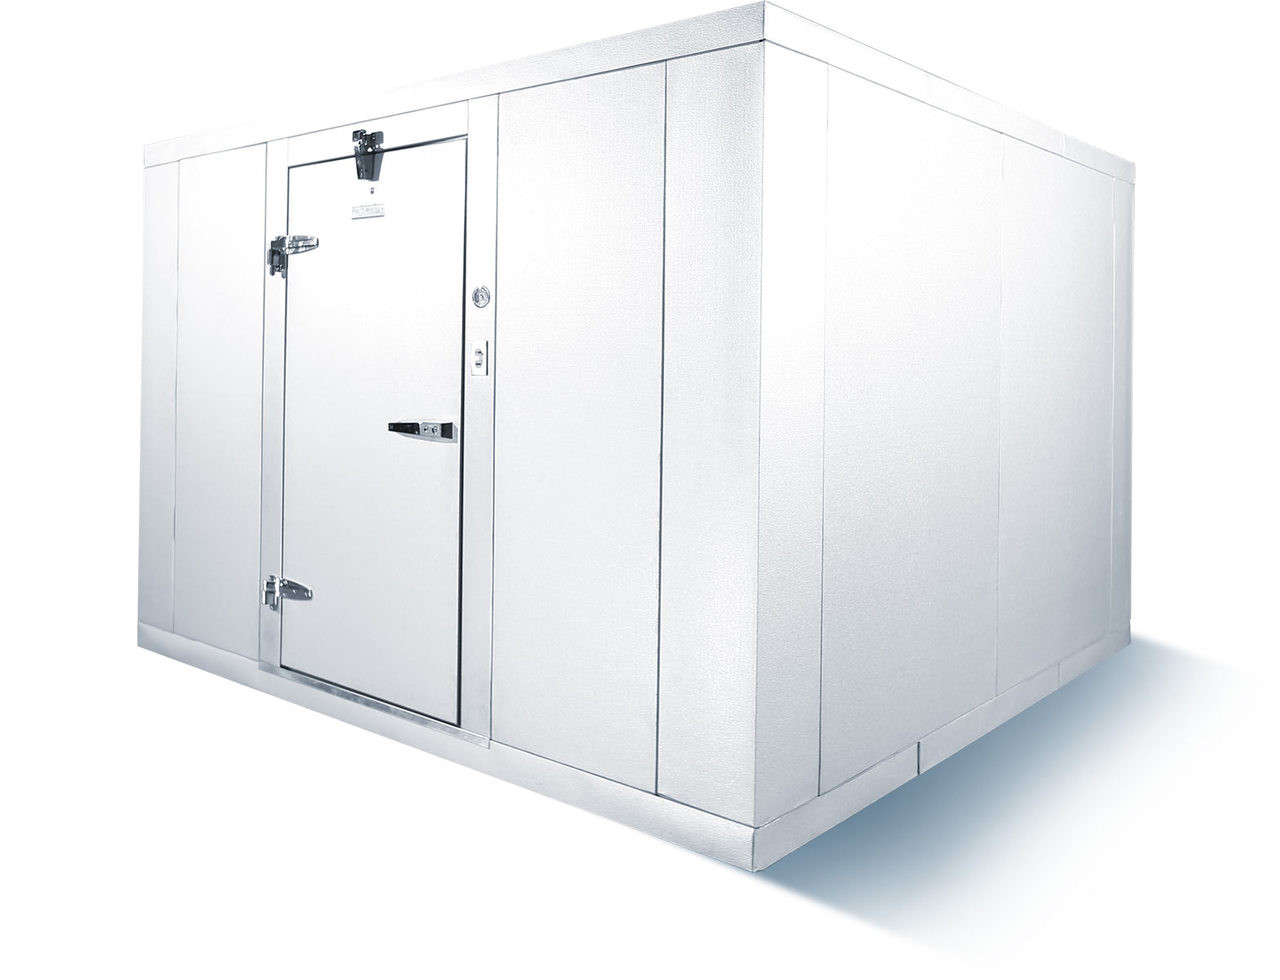 Mr Winter 10x10cnf R Outdoor Walk In Cooler Without Floor 10 X 10 Remote Refrigeration Outdoor Win Depot